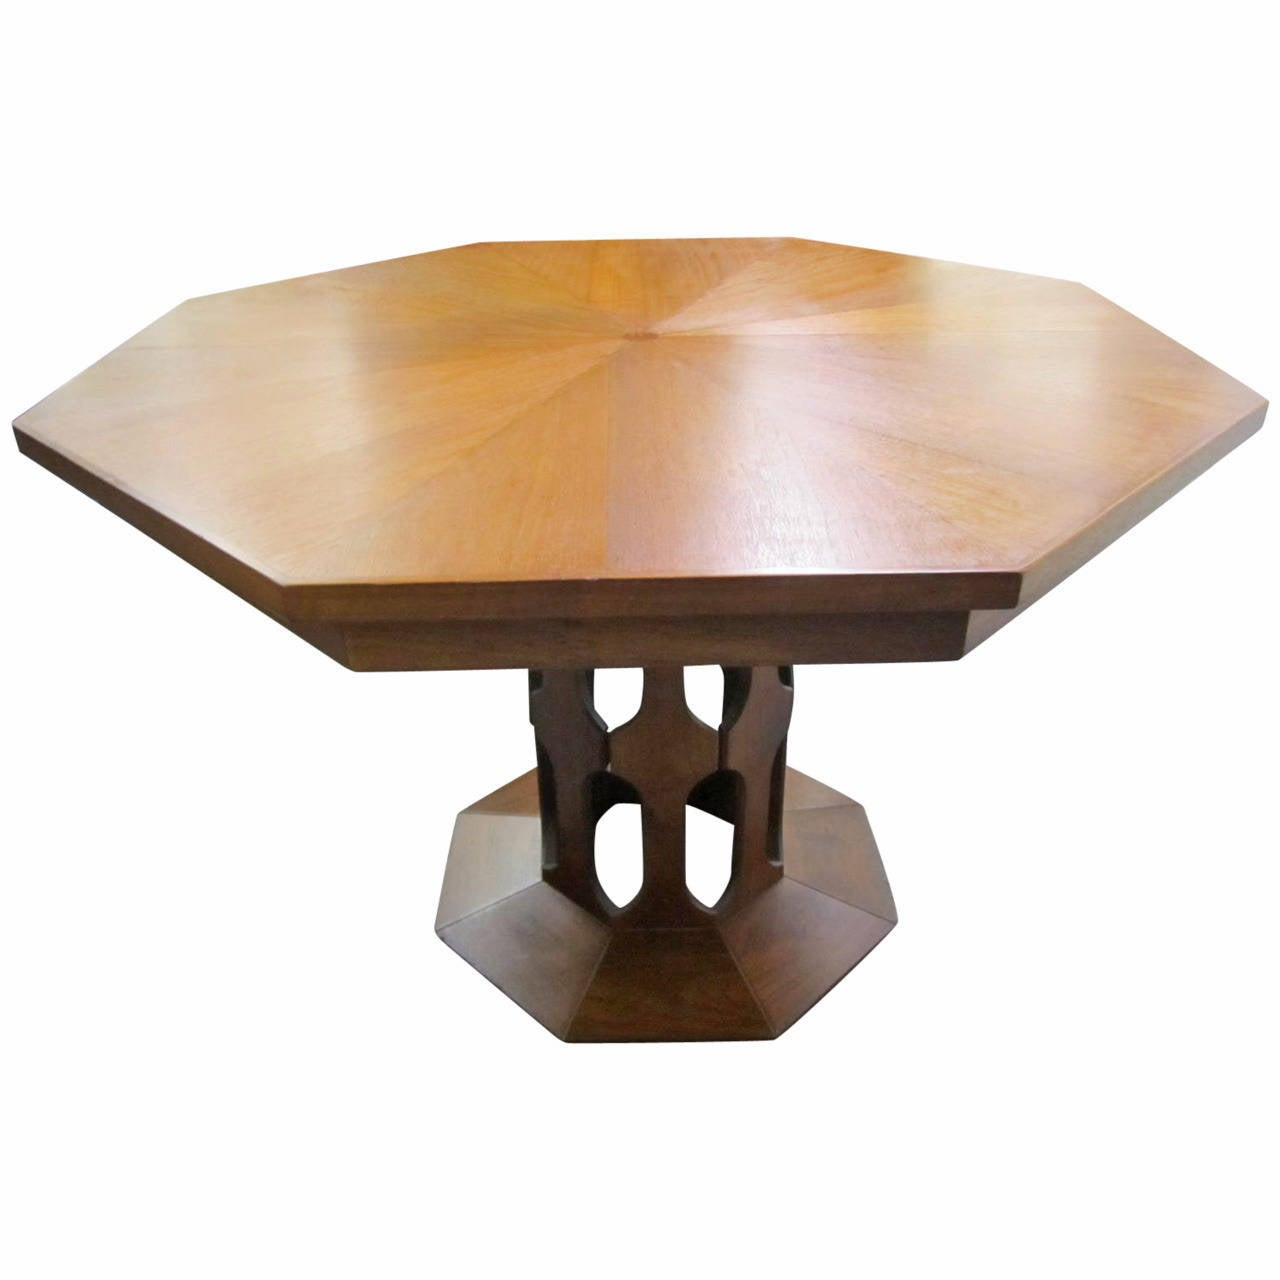 Dining Table With Three Extension Leaves And Six Matching: Probber Style Walnut Octagon Extension Table With Three